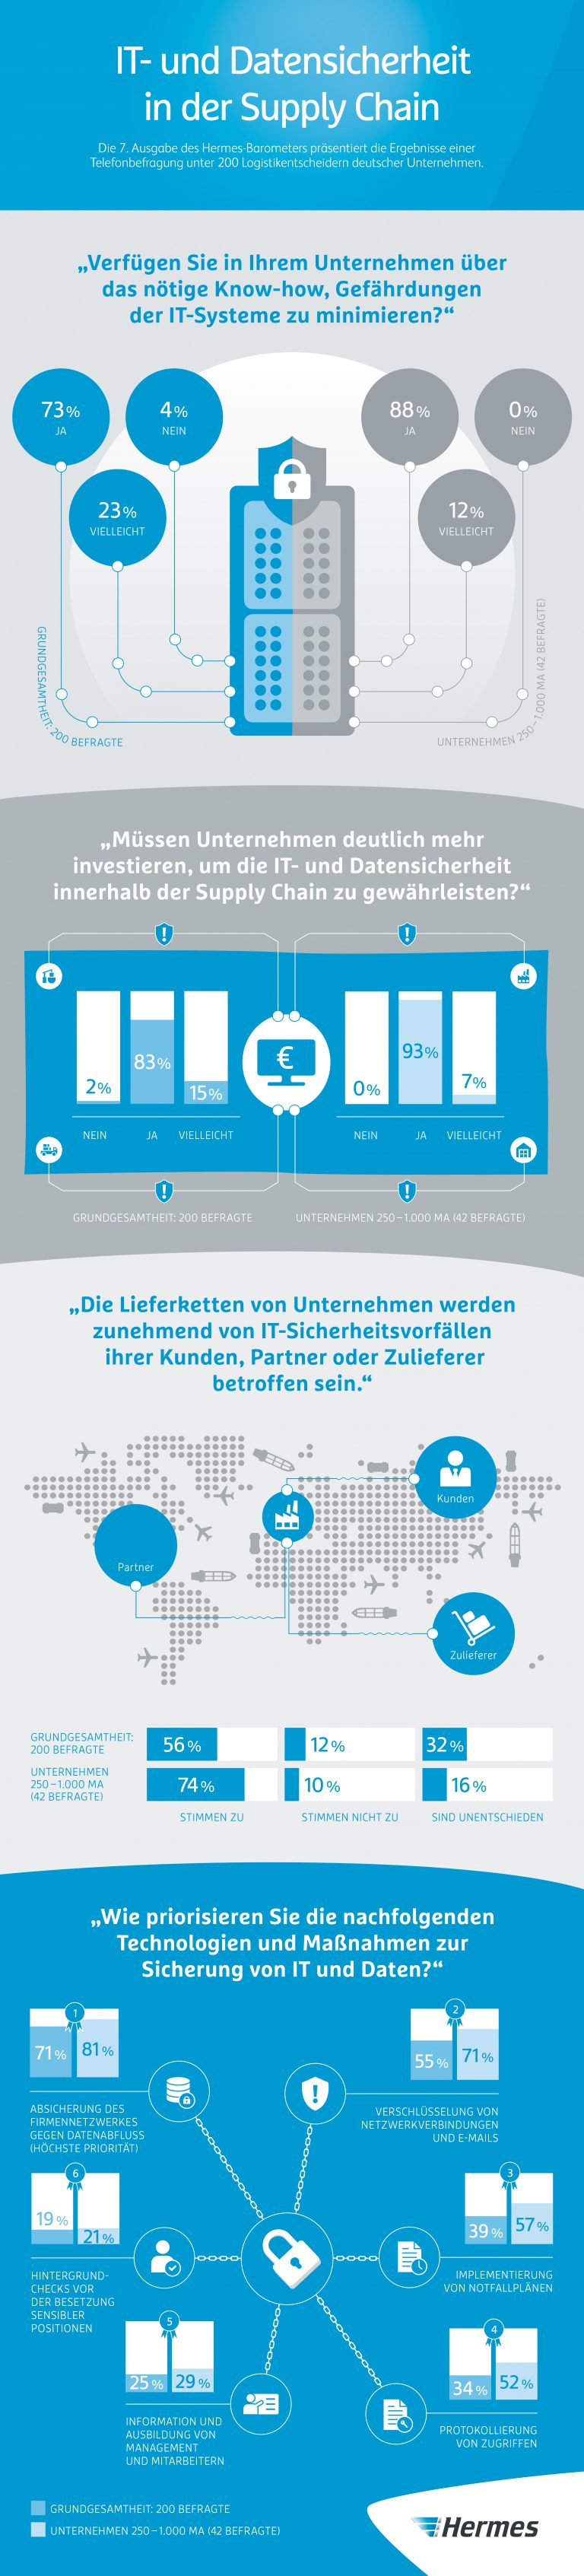 Infografik | Hermes Barometer: IT- und Datensicherheit in der Supply Chain